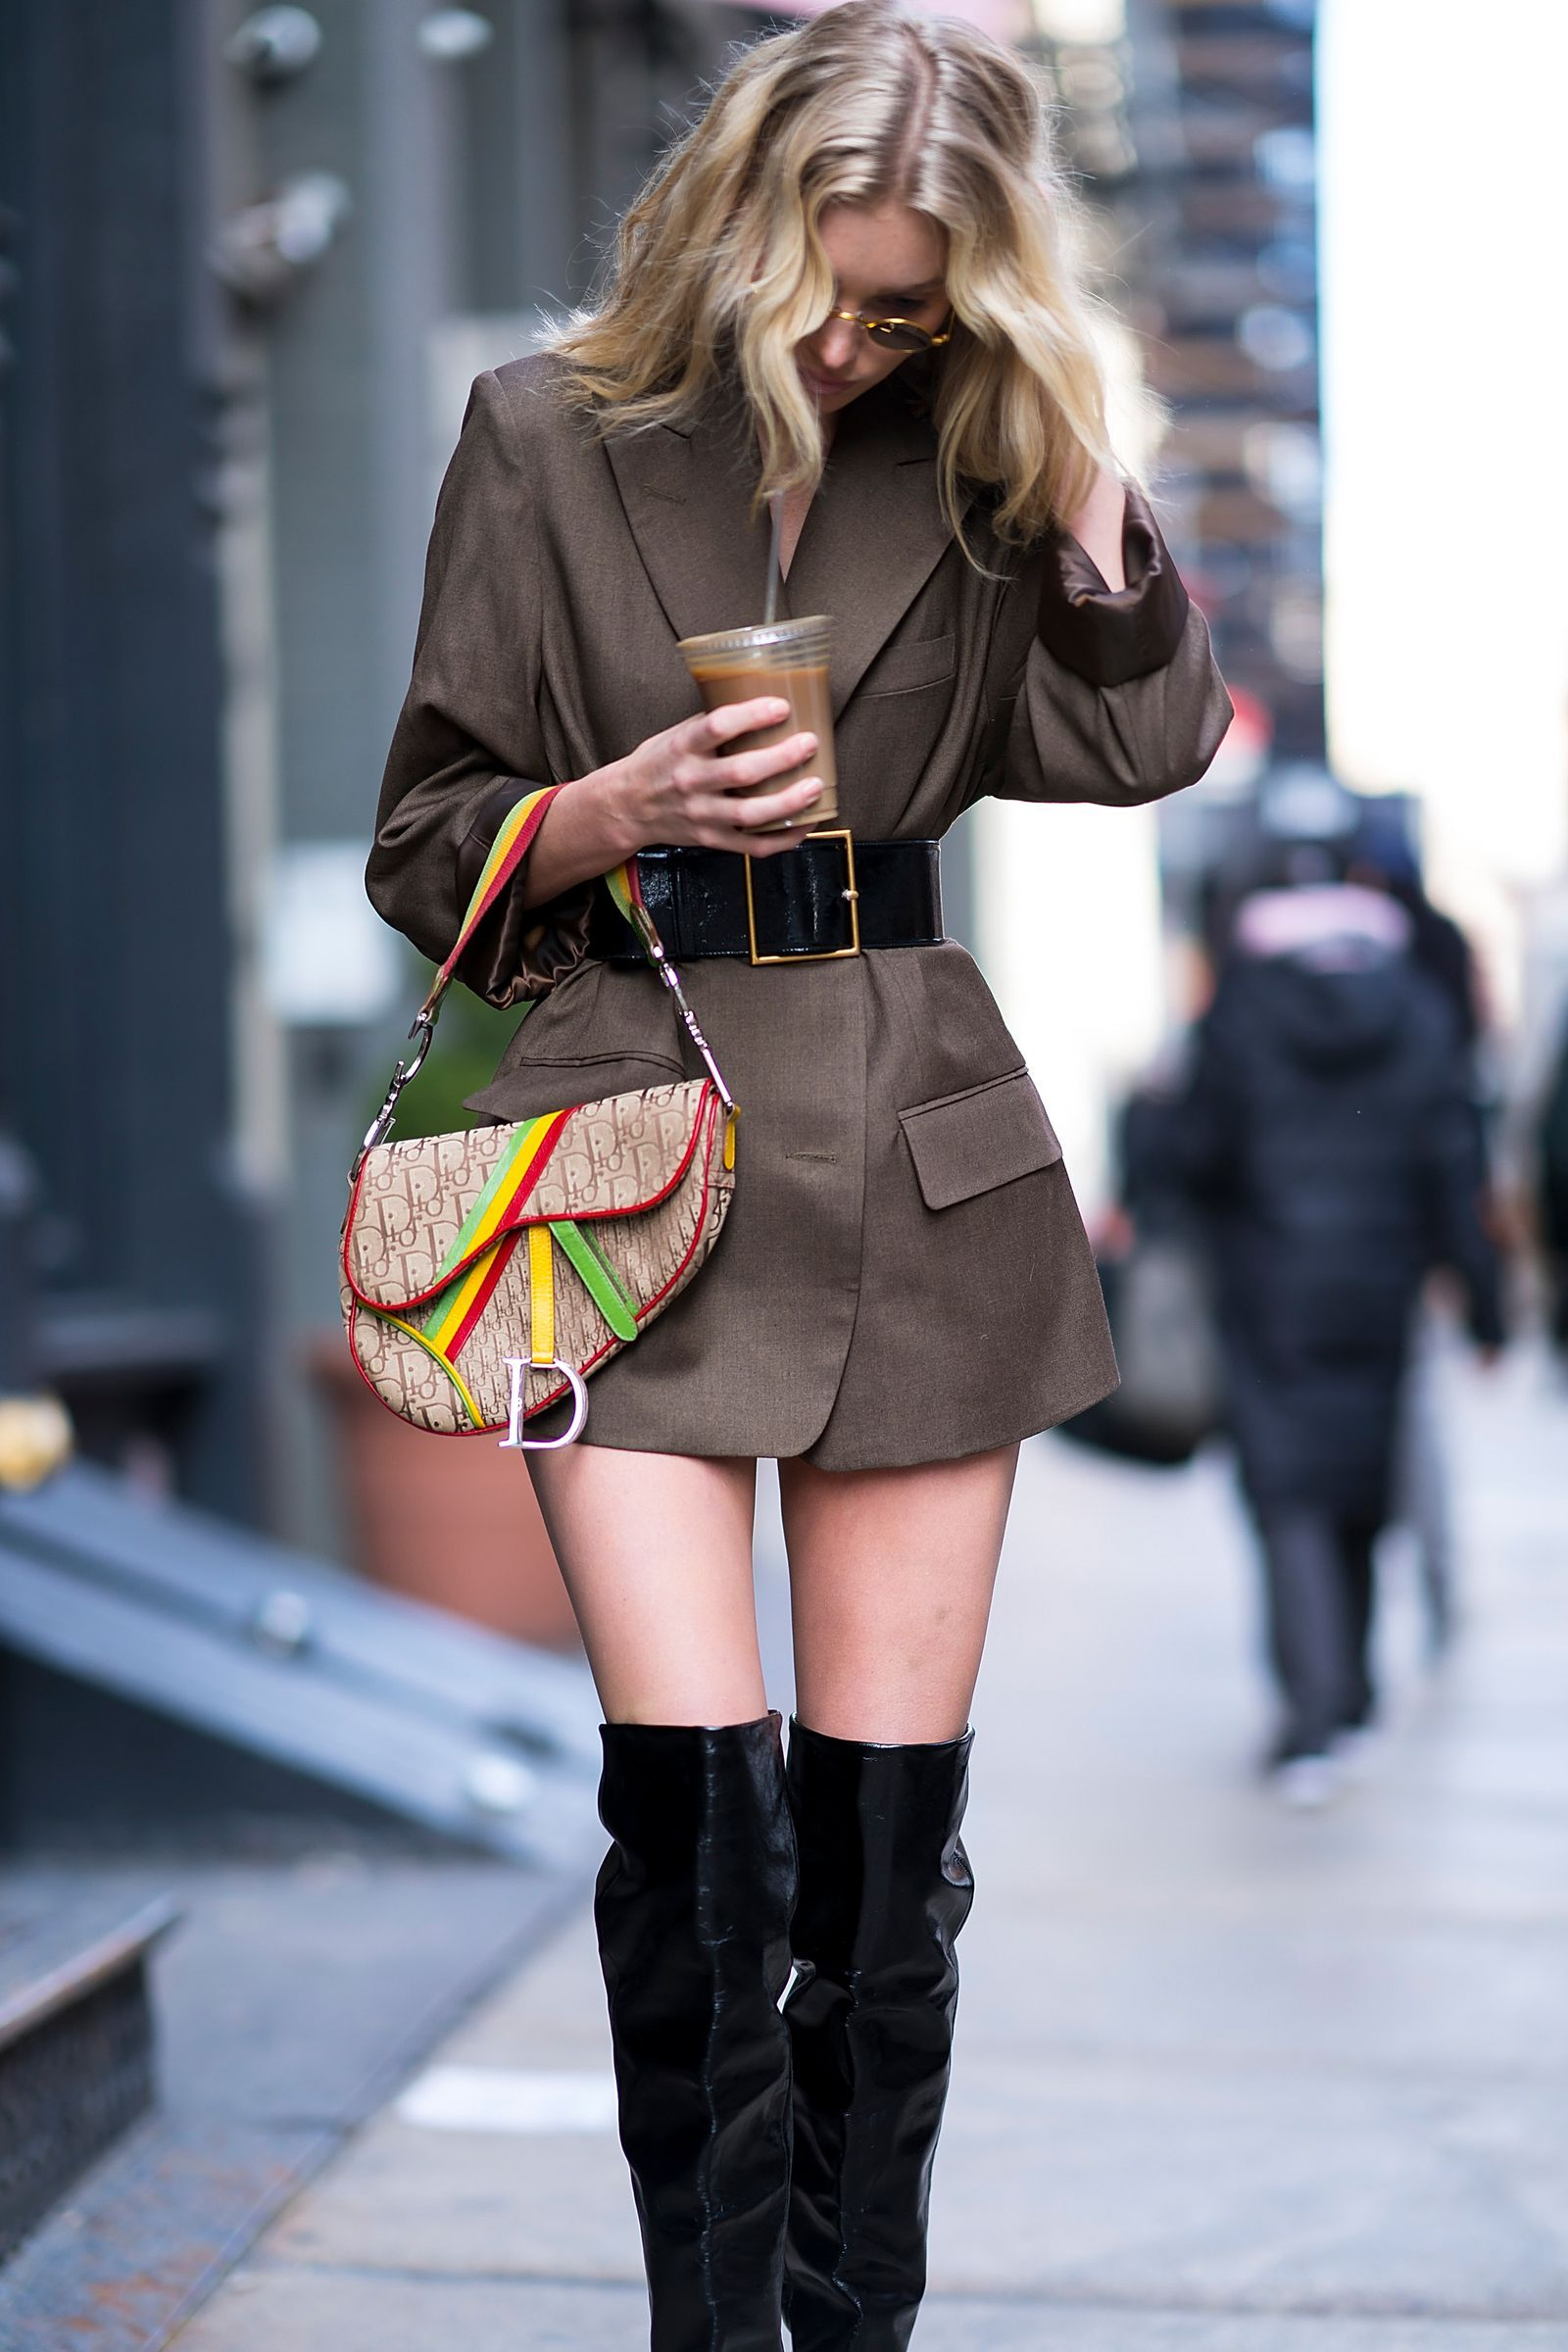 Dior Brings Back Its Early 2000s Saddle Bags   Style   Fashion, Dior ... 7abc188cb342